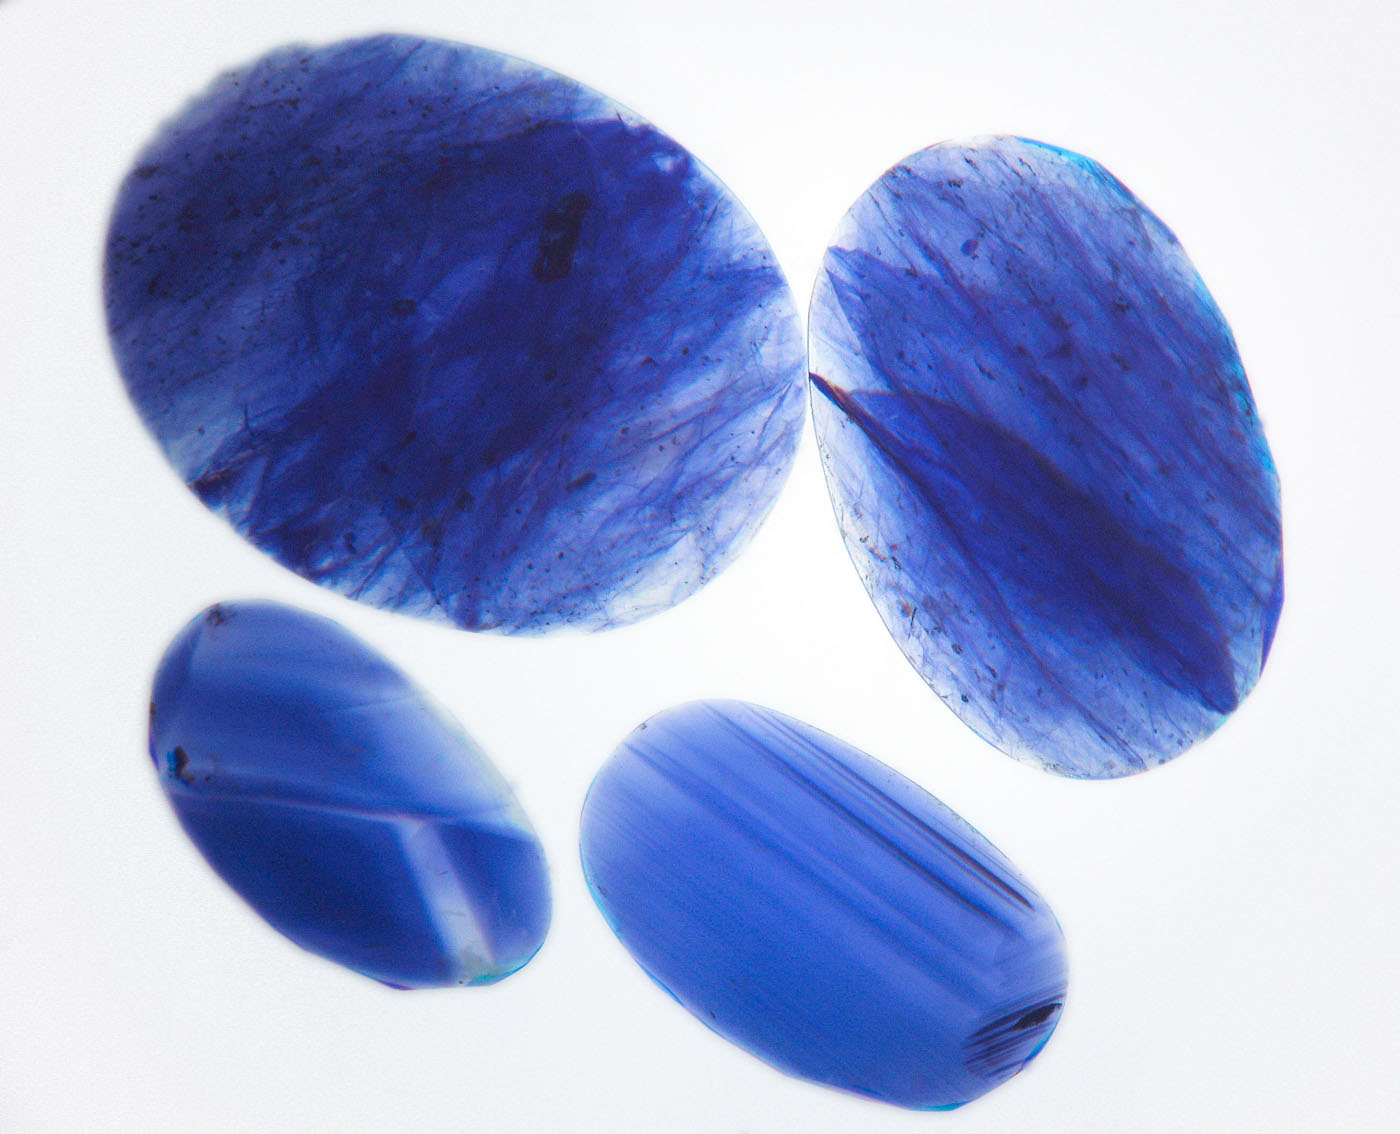 Figure 12. Immersion in di-iodomethane (methylene iodide) in diffuse light-field illumination quickly reveals the blue color concentrations in the cobalt-glass filled sapphires (top two stones), whereas natural sapphires show angular color zoning (lower two stones). Image corrected to remove yellow color of liquid. (Photo: Wimon Manorotkul, Lotus Gemology).